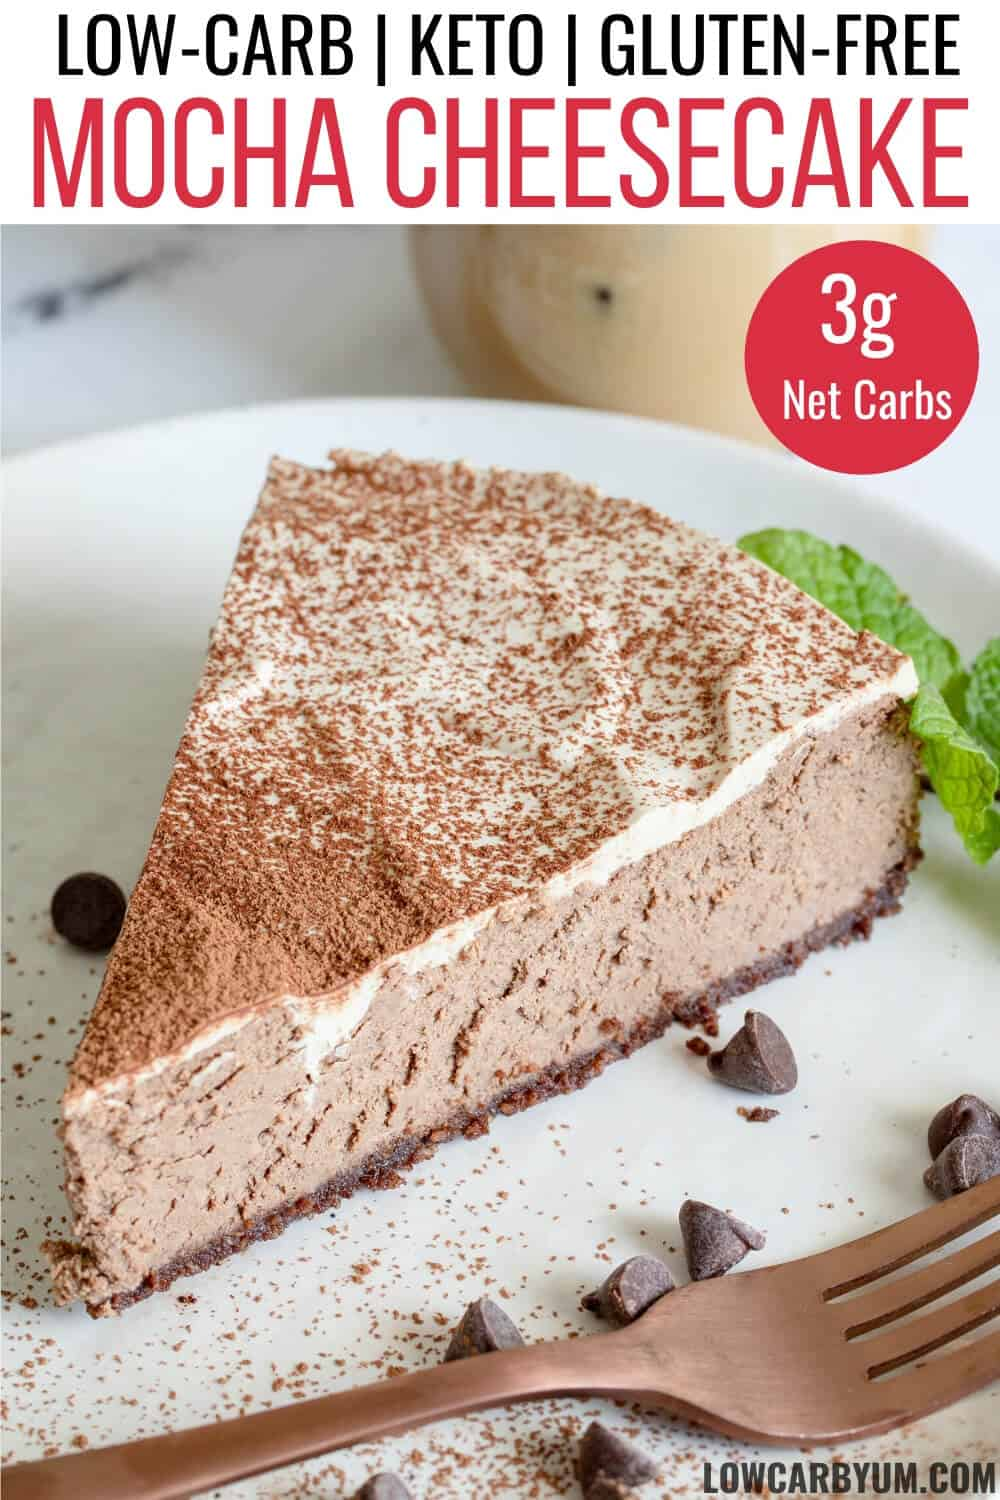 mocha cheesecake recipe